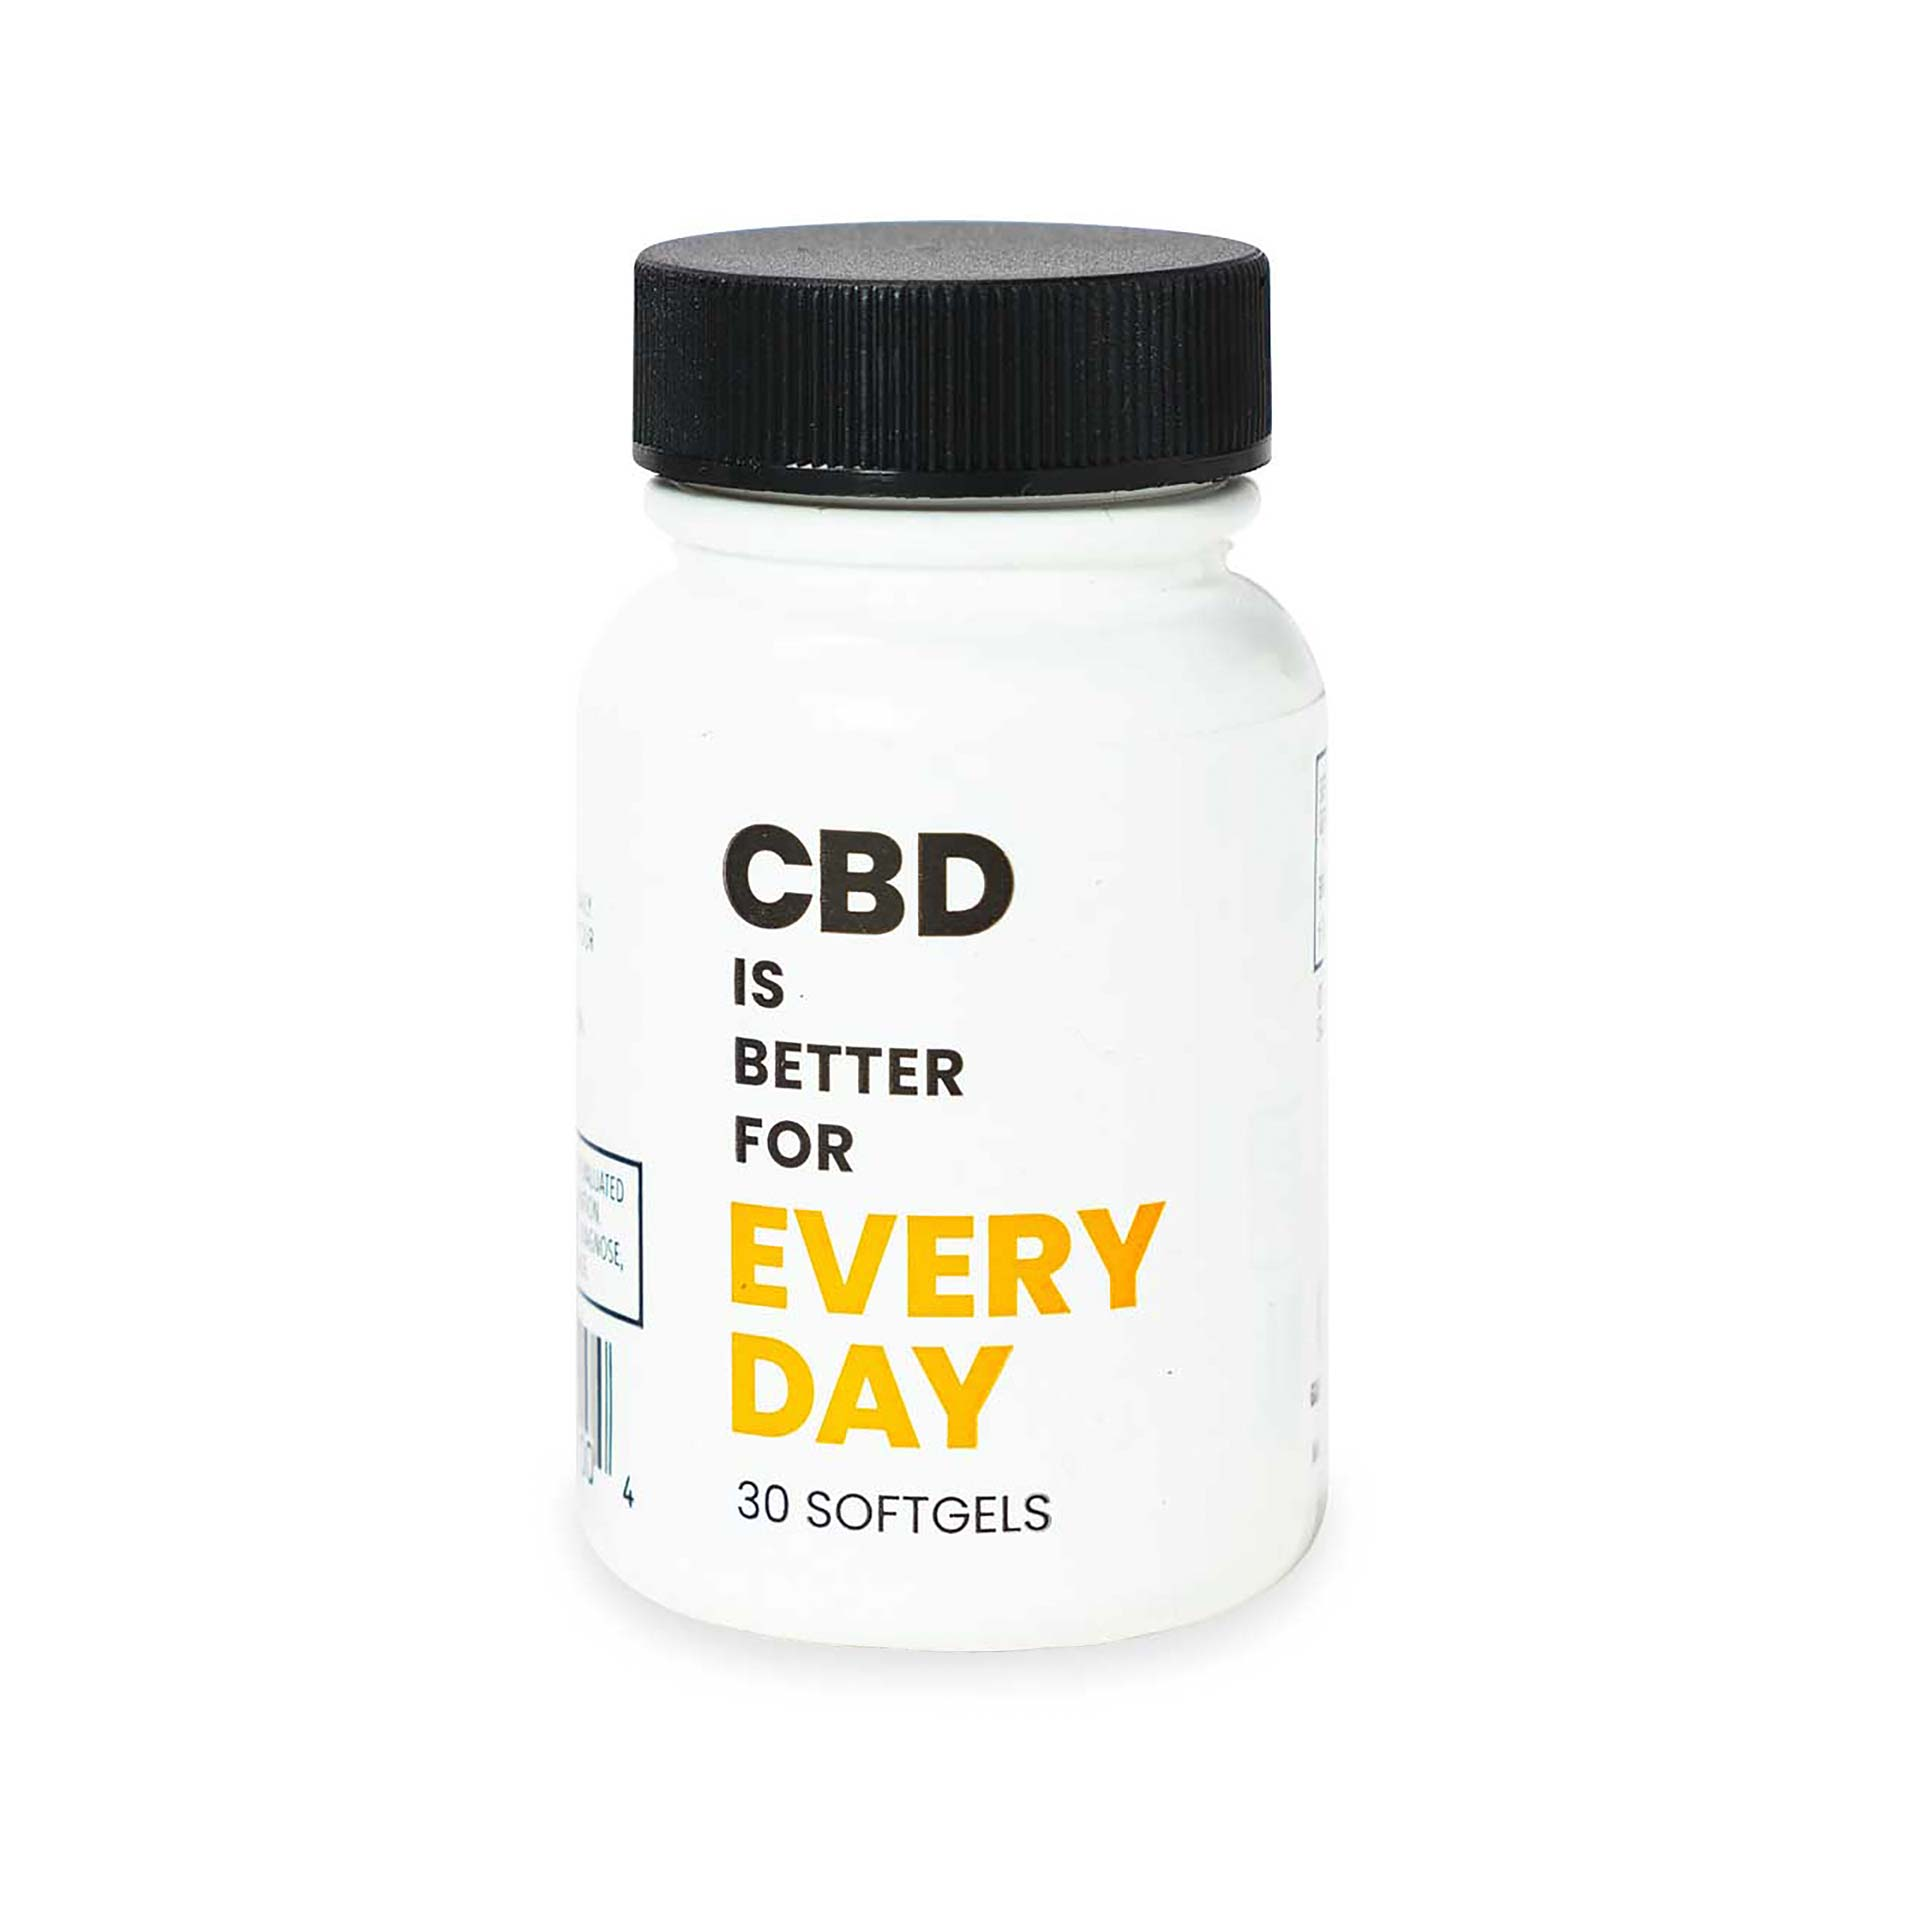 CBD IS BETTER FOR EVERY DAY Bottle (25mg CBD)